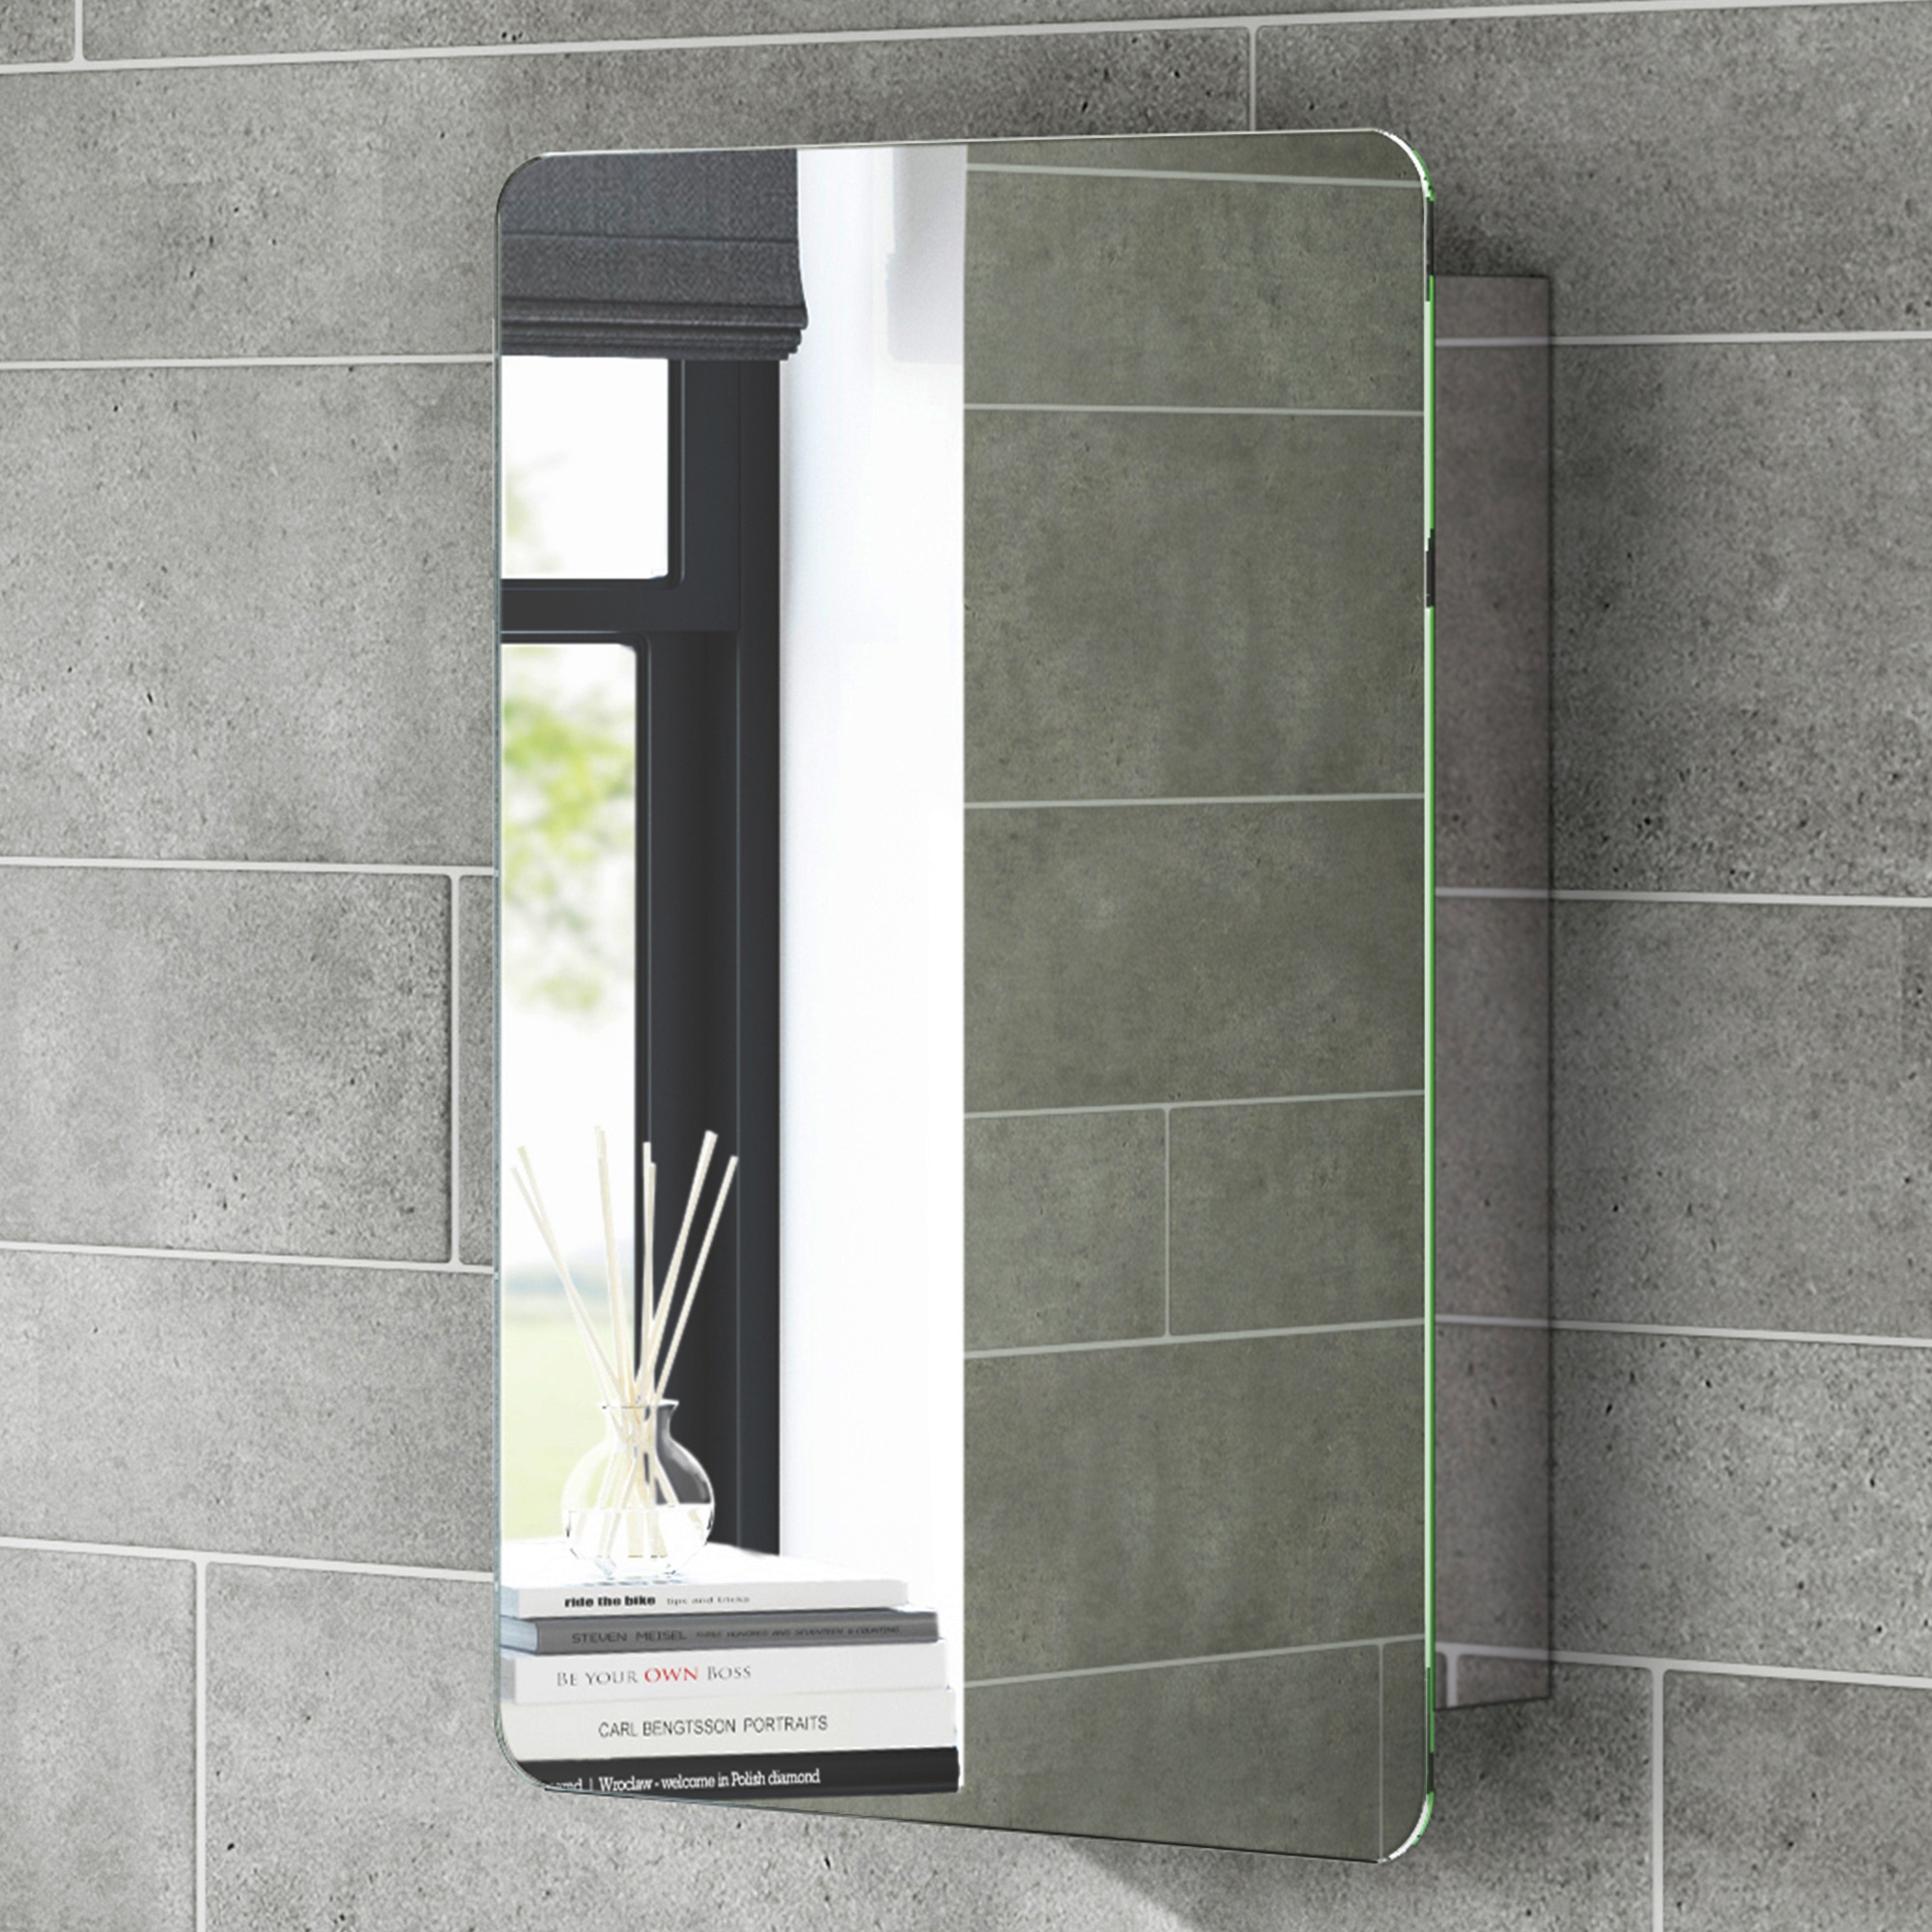 Bathroom Sliding Door Cabinetbest sliding door bathroom cabinet white photos best bathroom